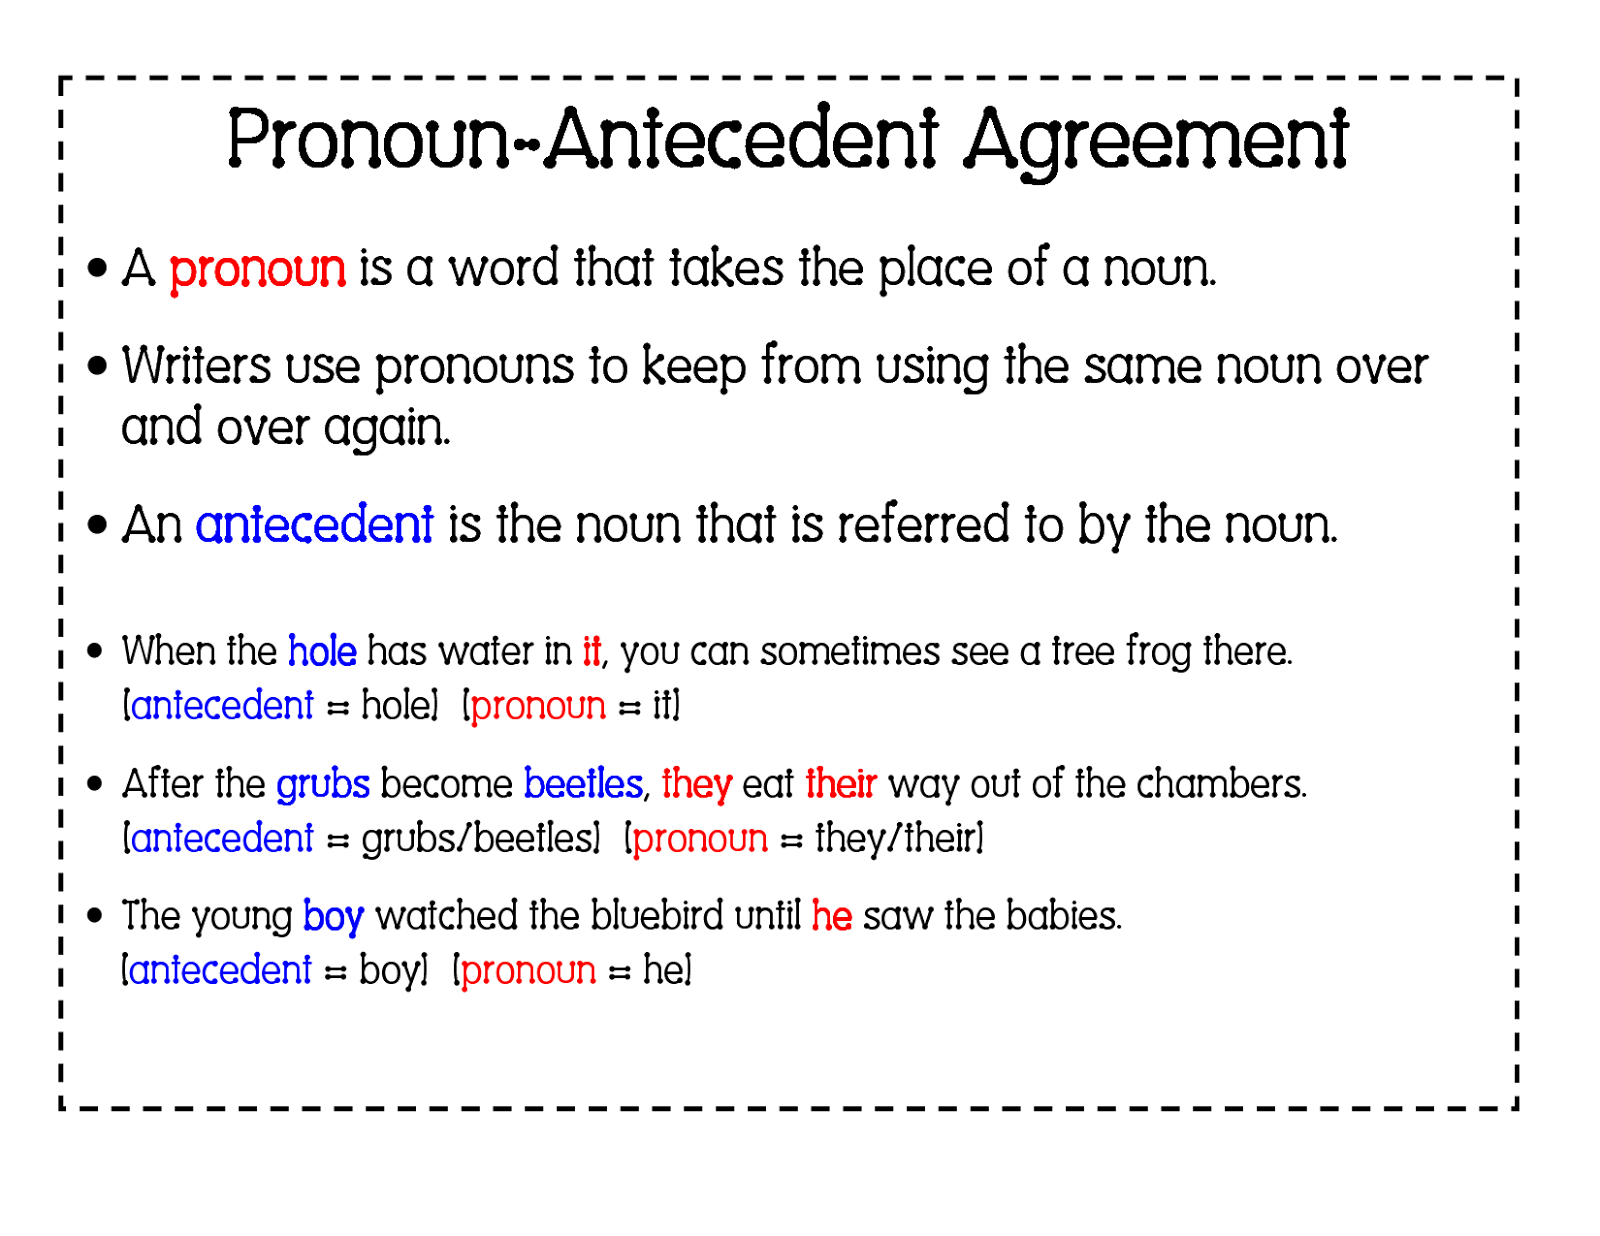 Creative Image Of Correct Pronoun Antecedent Agreement